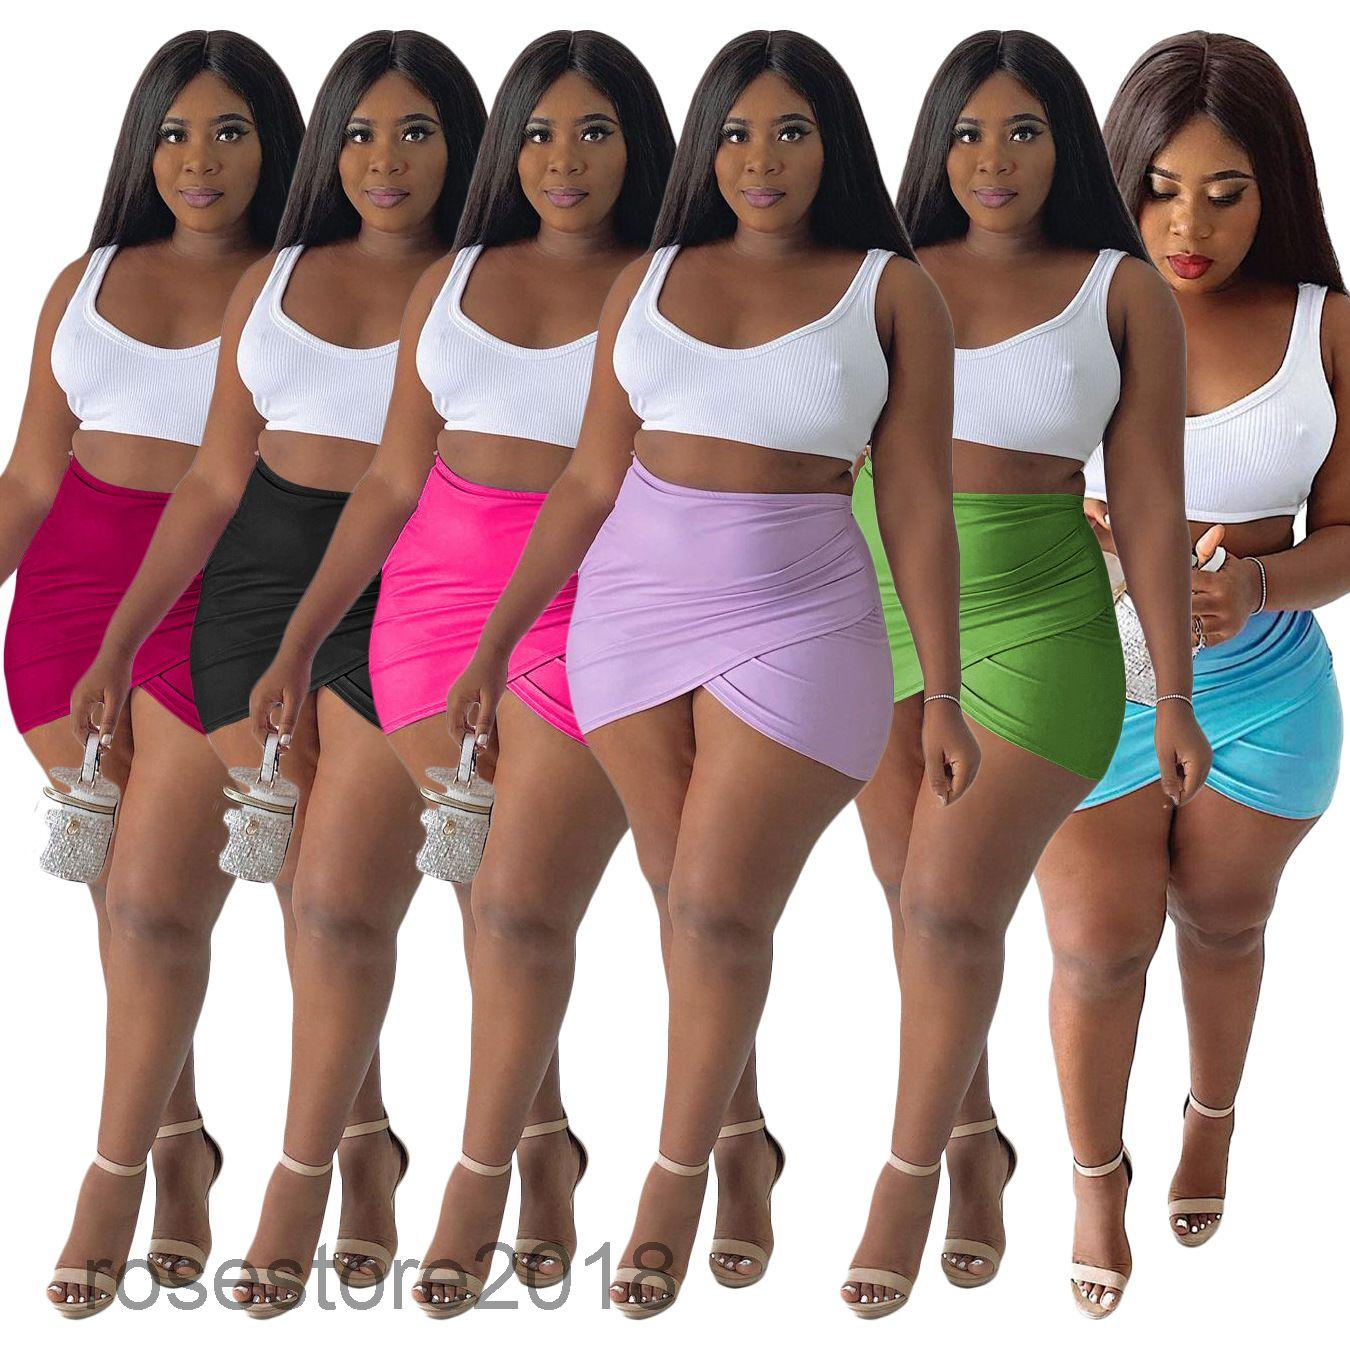 6 colors Hot selling women's short Skirt 2021 women's summer new platform solid color sexy Mini Skirt fashion Designer style Slim clothing